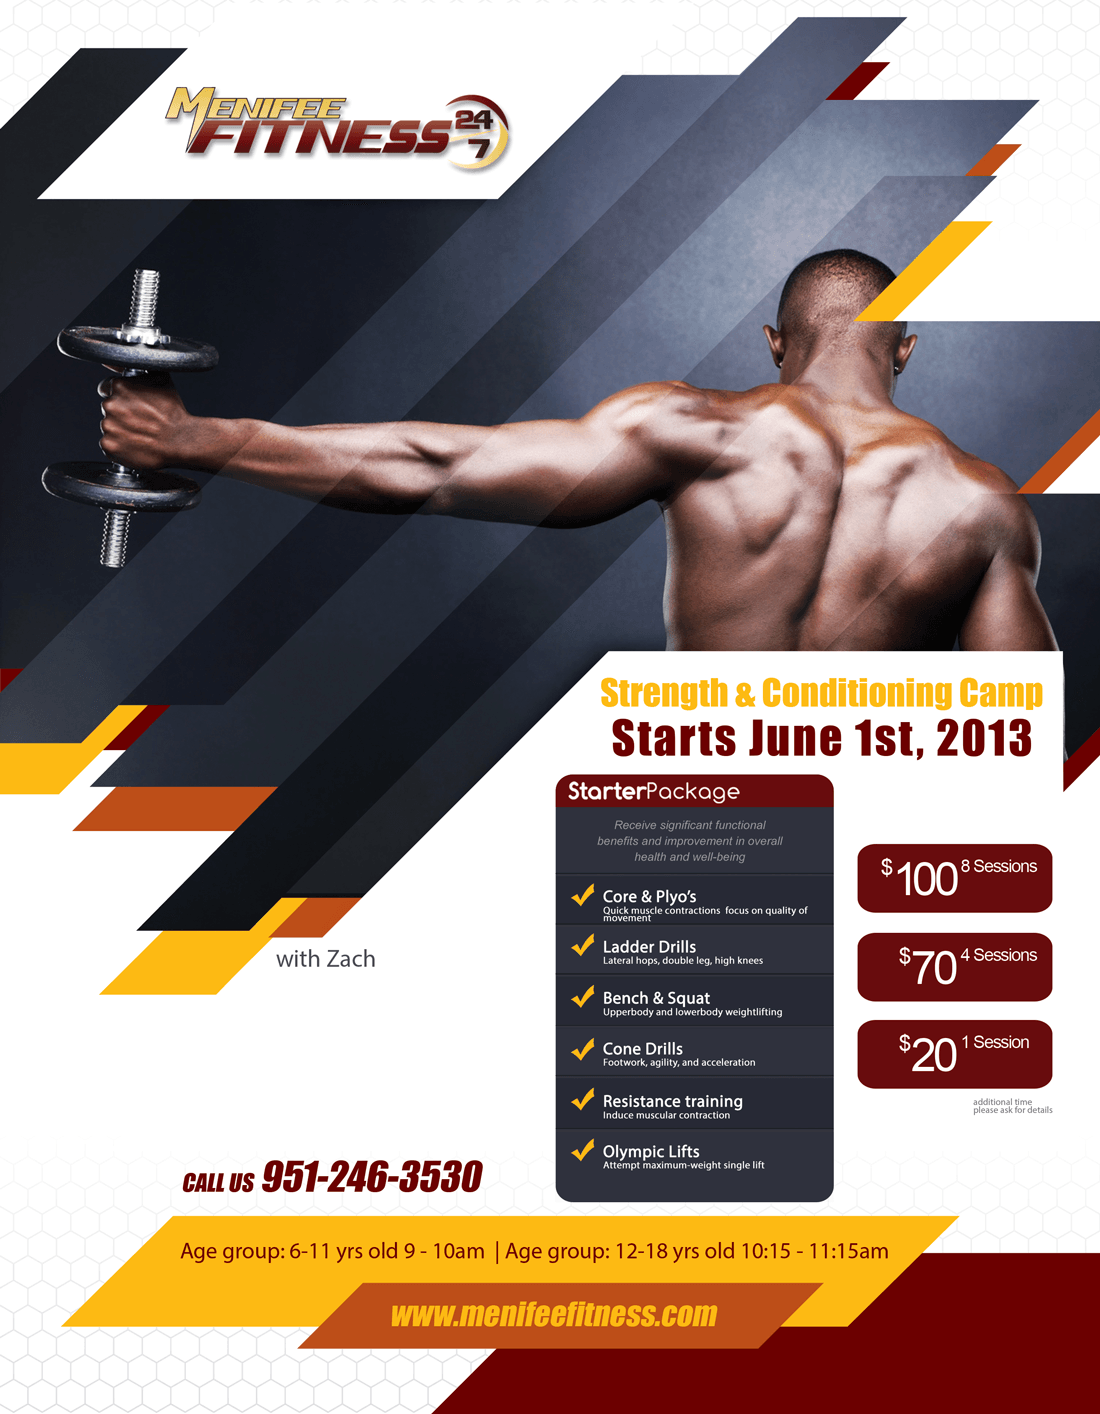 Menifee Fitness Strength Conditioning Camp